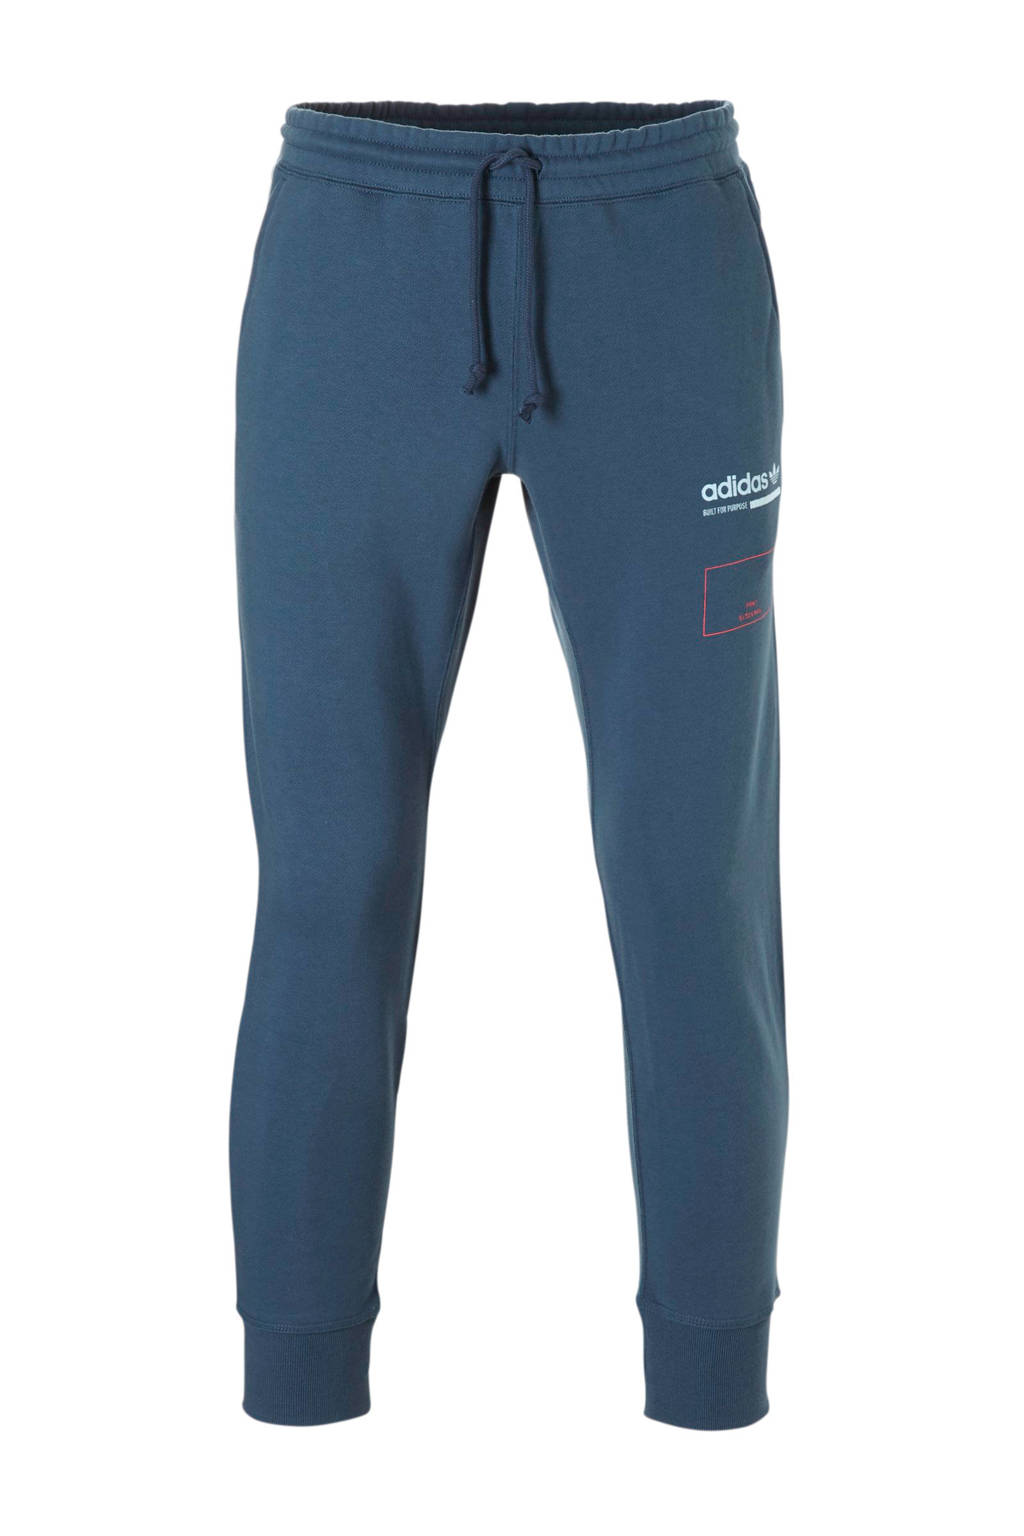 adidas originals joggingbroek blauw, Blauw